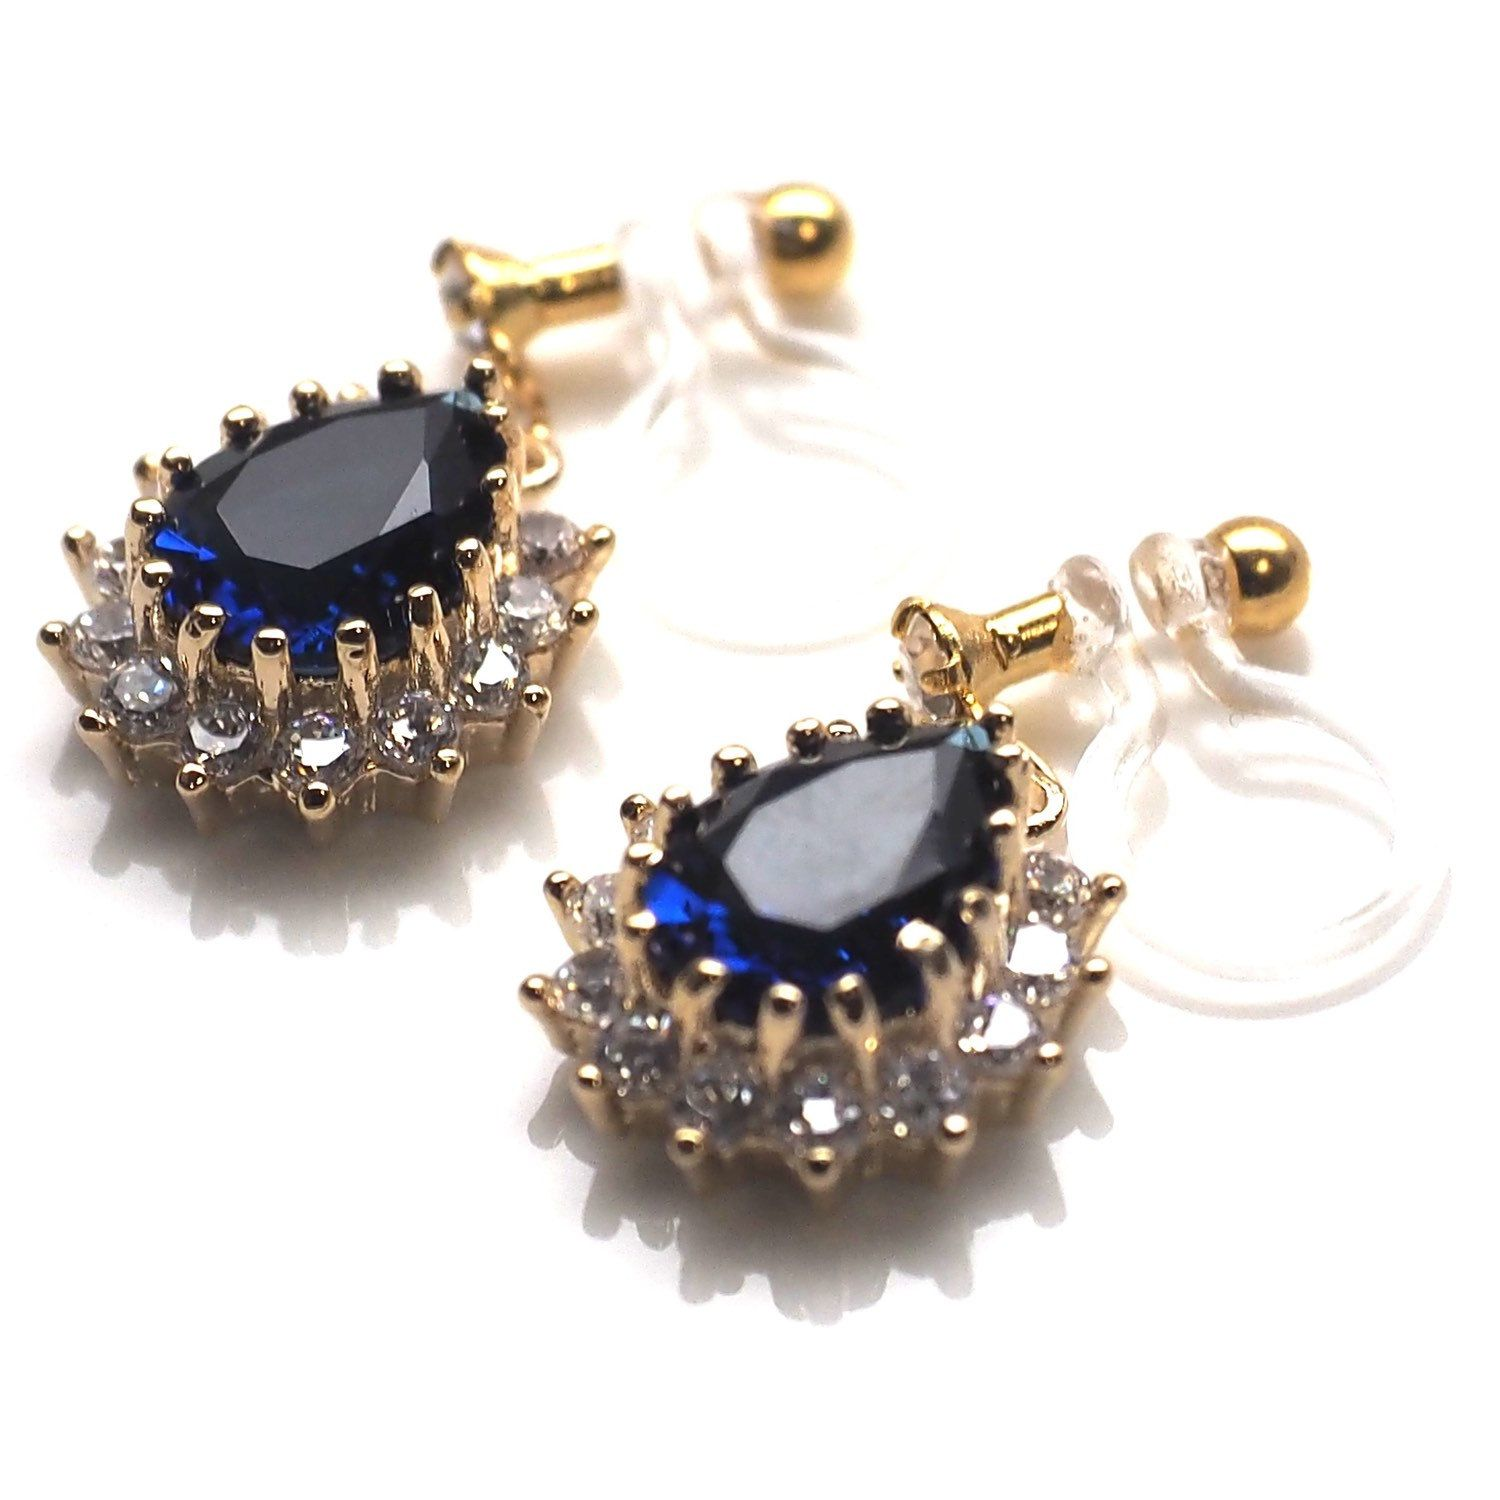 Sapphire Earring like! Navy blue cubic zirconia invisible clip on earrings.   These deep blue cubic zirconia is dainty. Ideal for elegant occasions. You are the right person who wears these earrings for your special days!